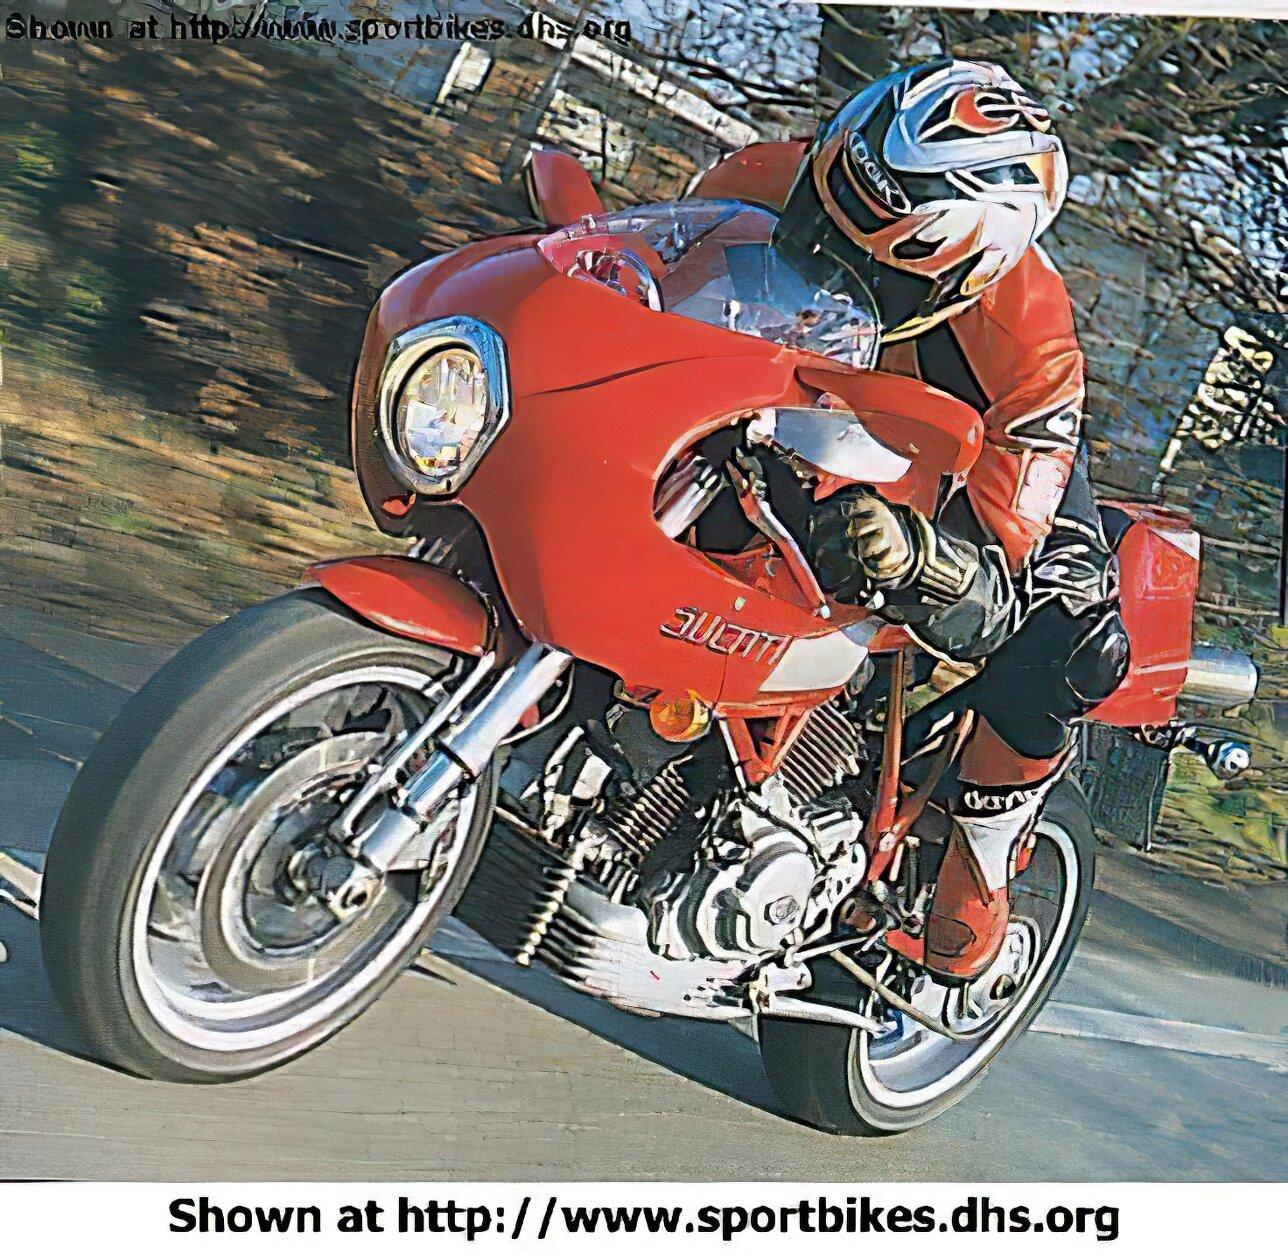 Ducati Monster Models - ID: 8804